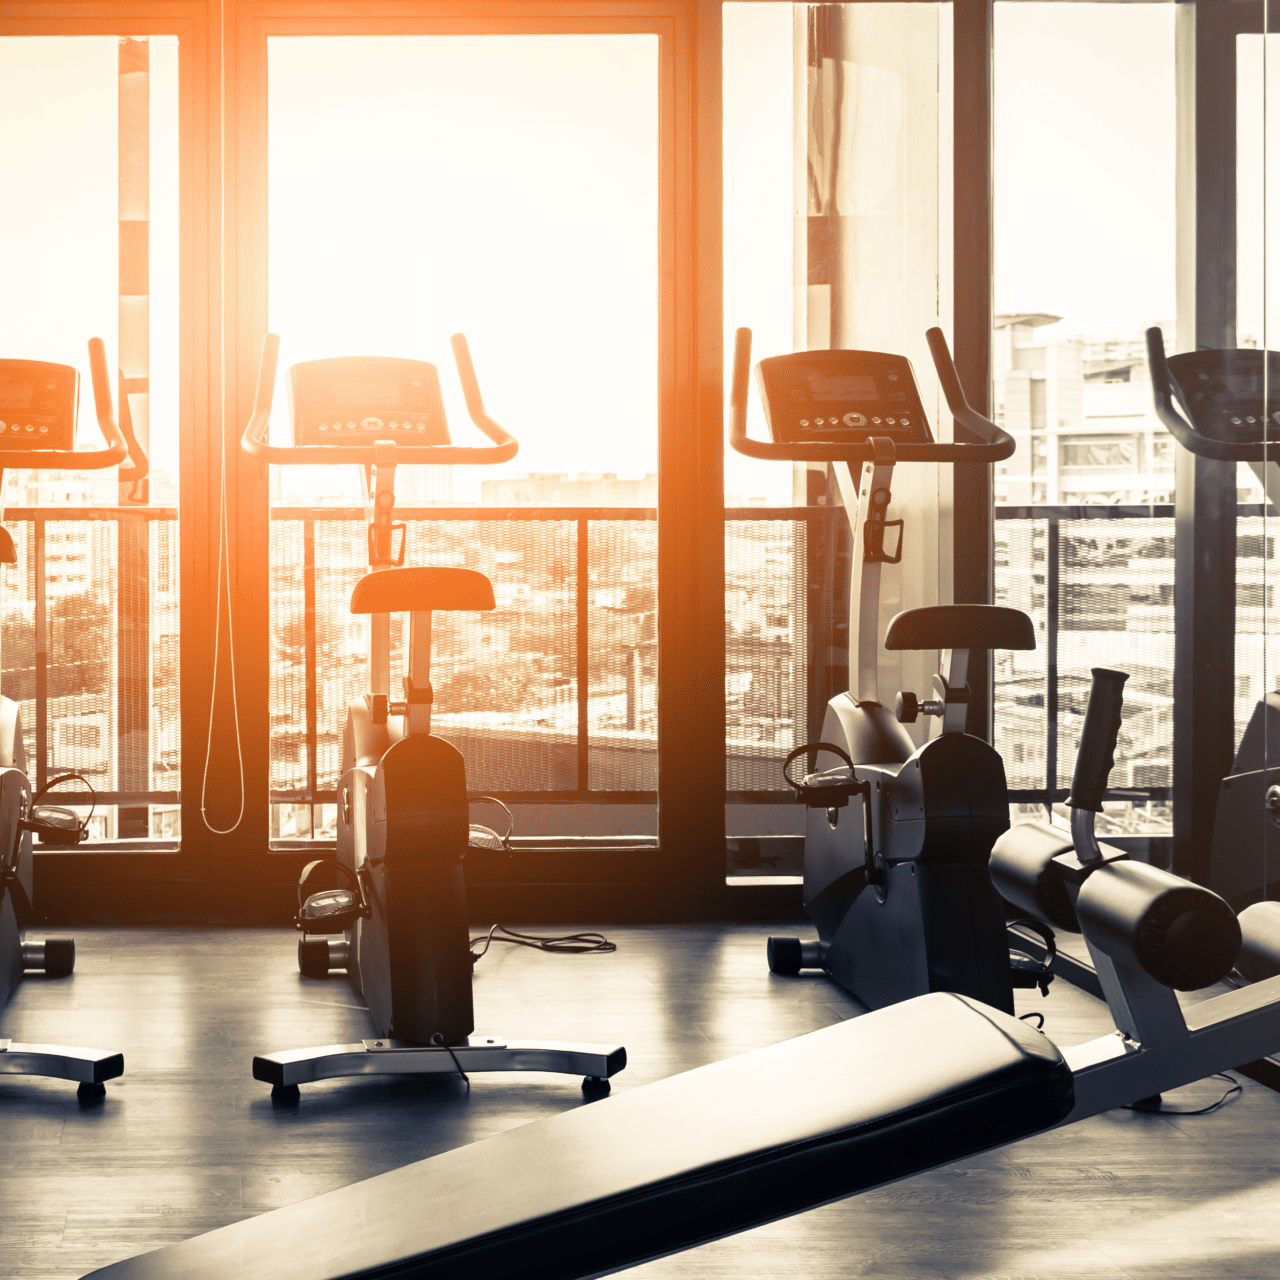 Elliptical in Modern gym interior with equipment. Row of training exercise bikes wheel detail, backlight